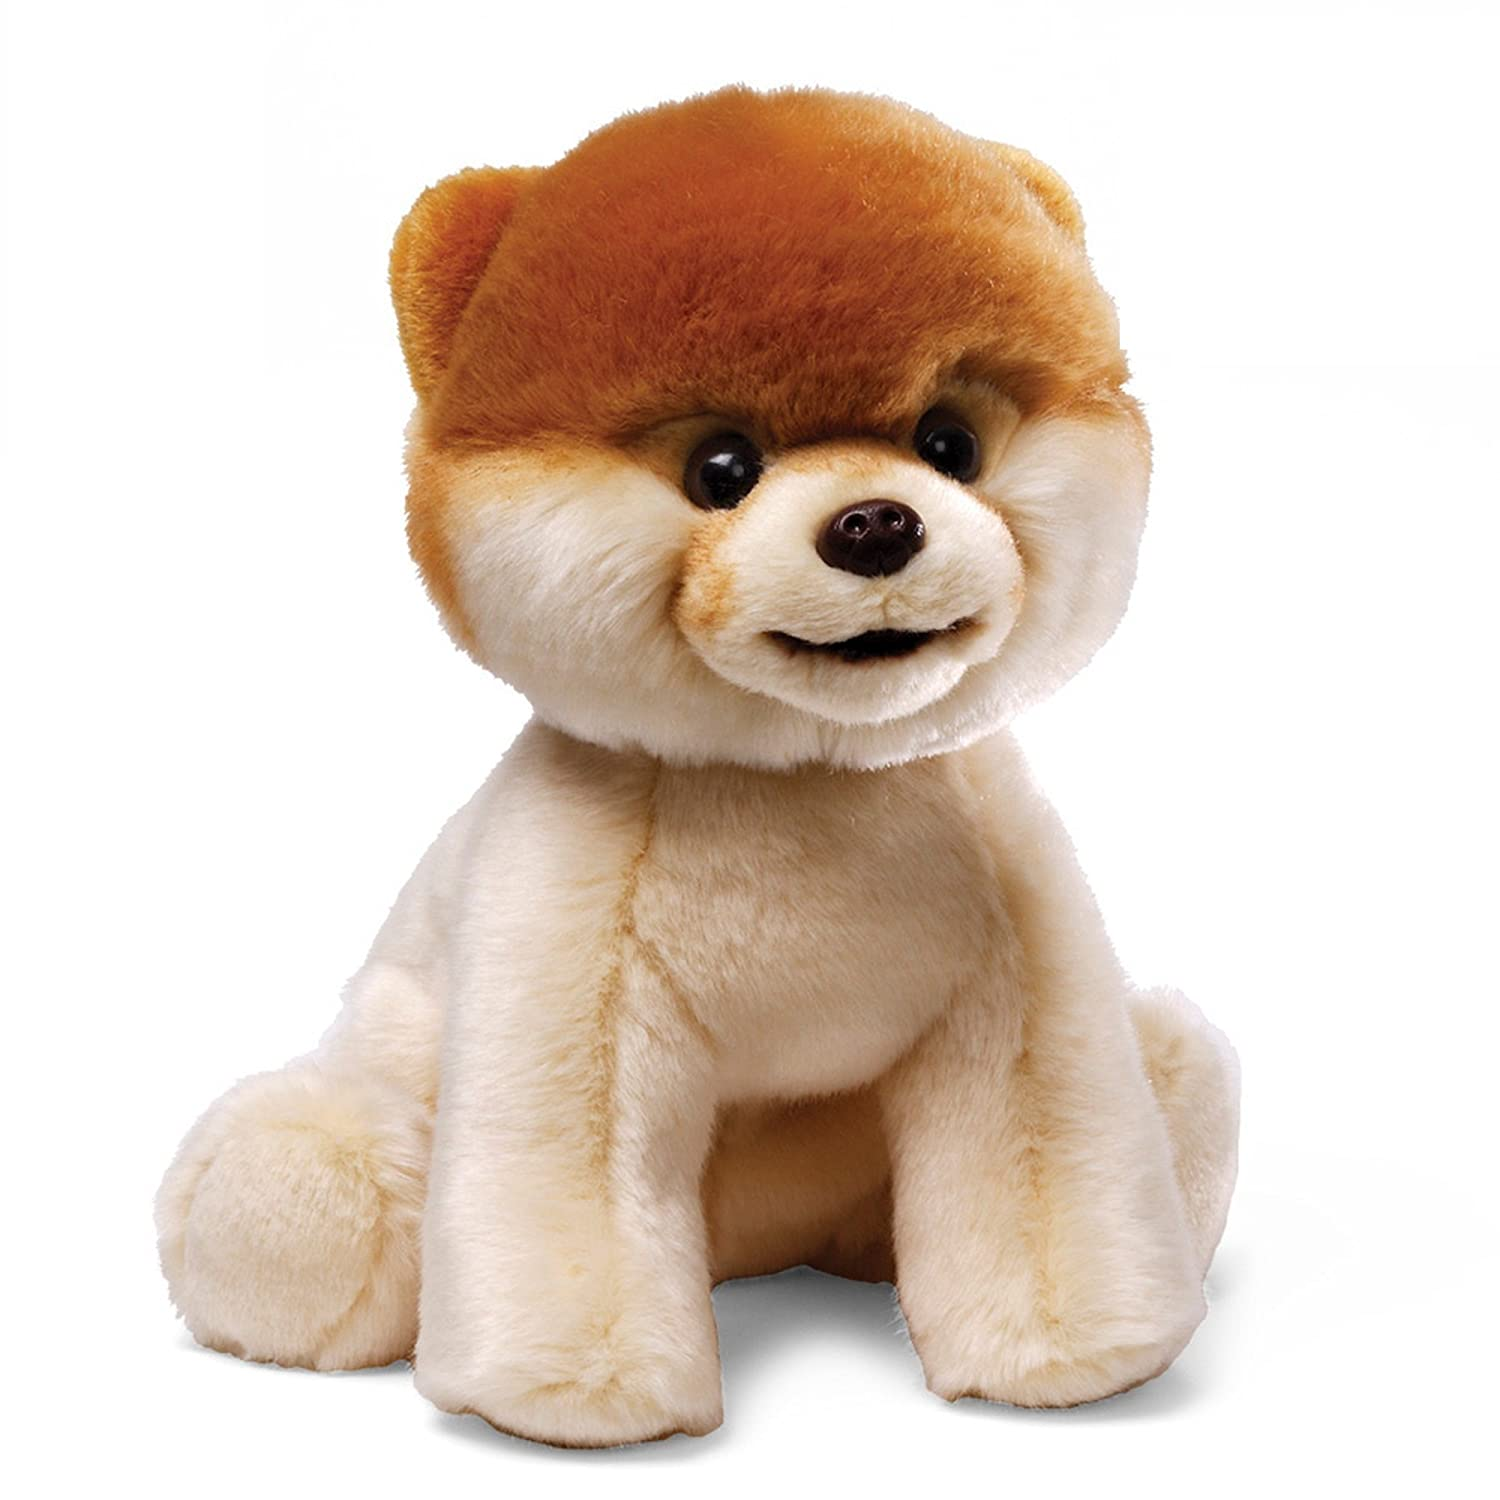 Amazon Gund Boo Plush Stuffed Dog Toy Toy Toys & Games